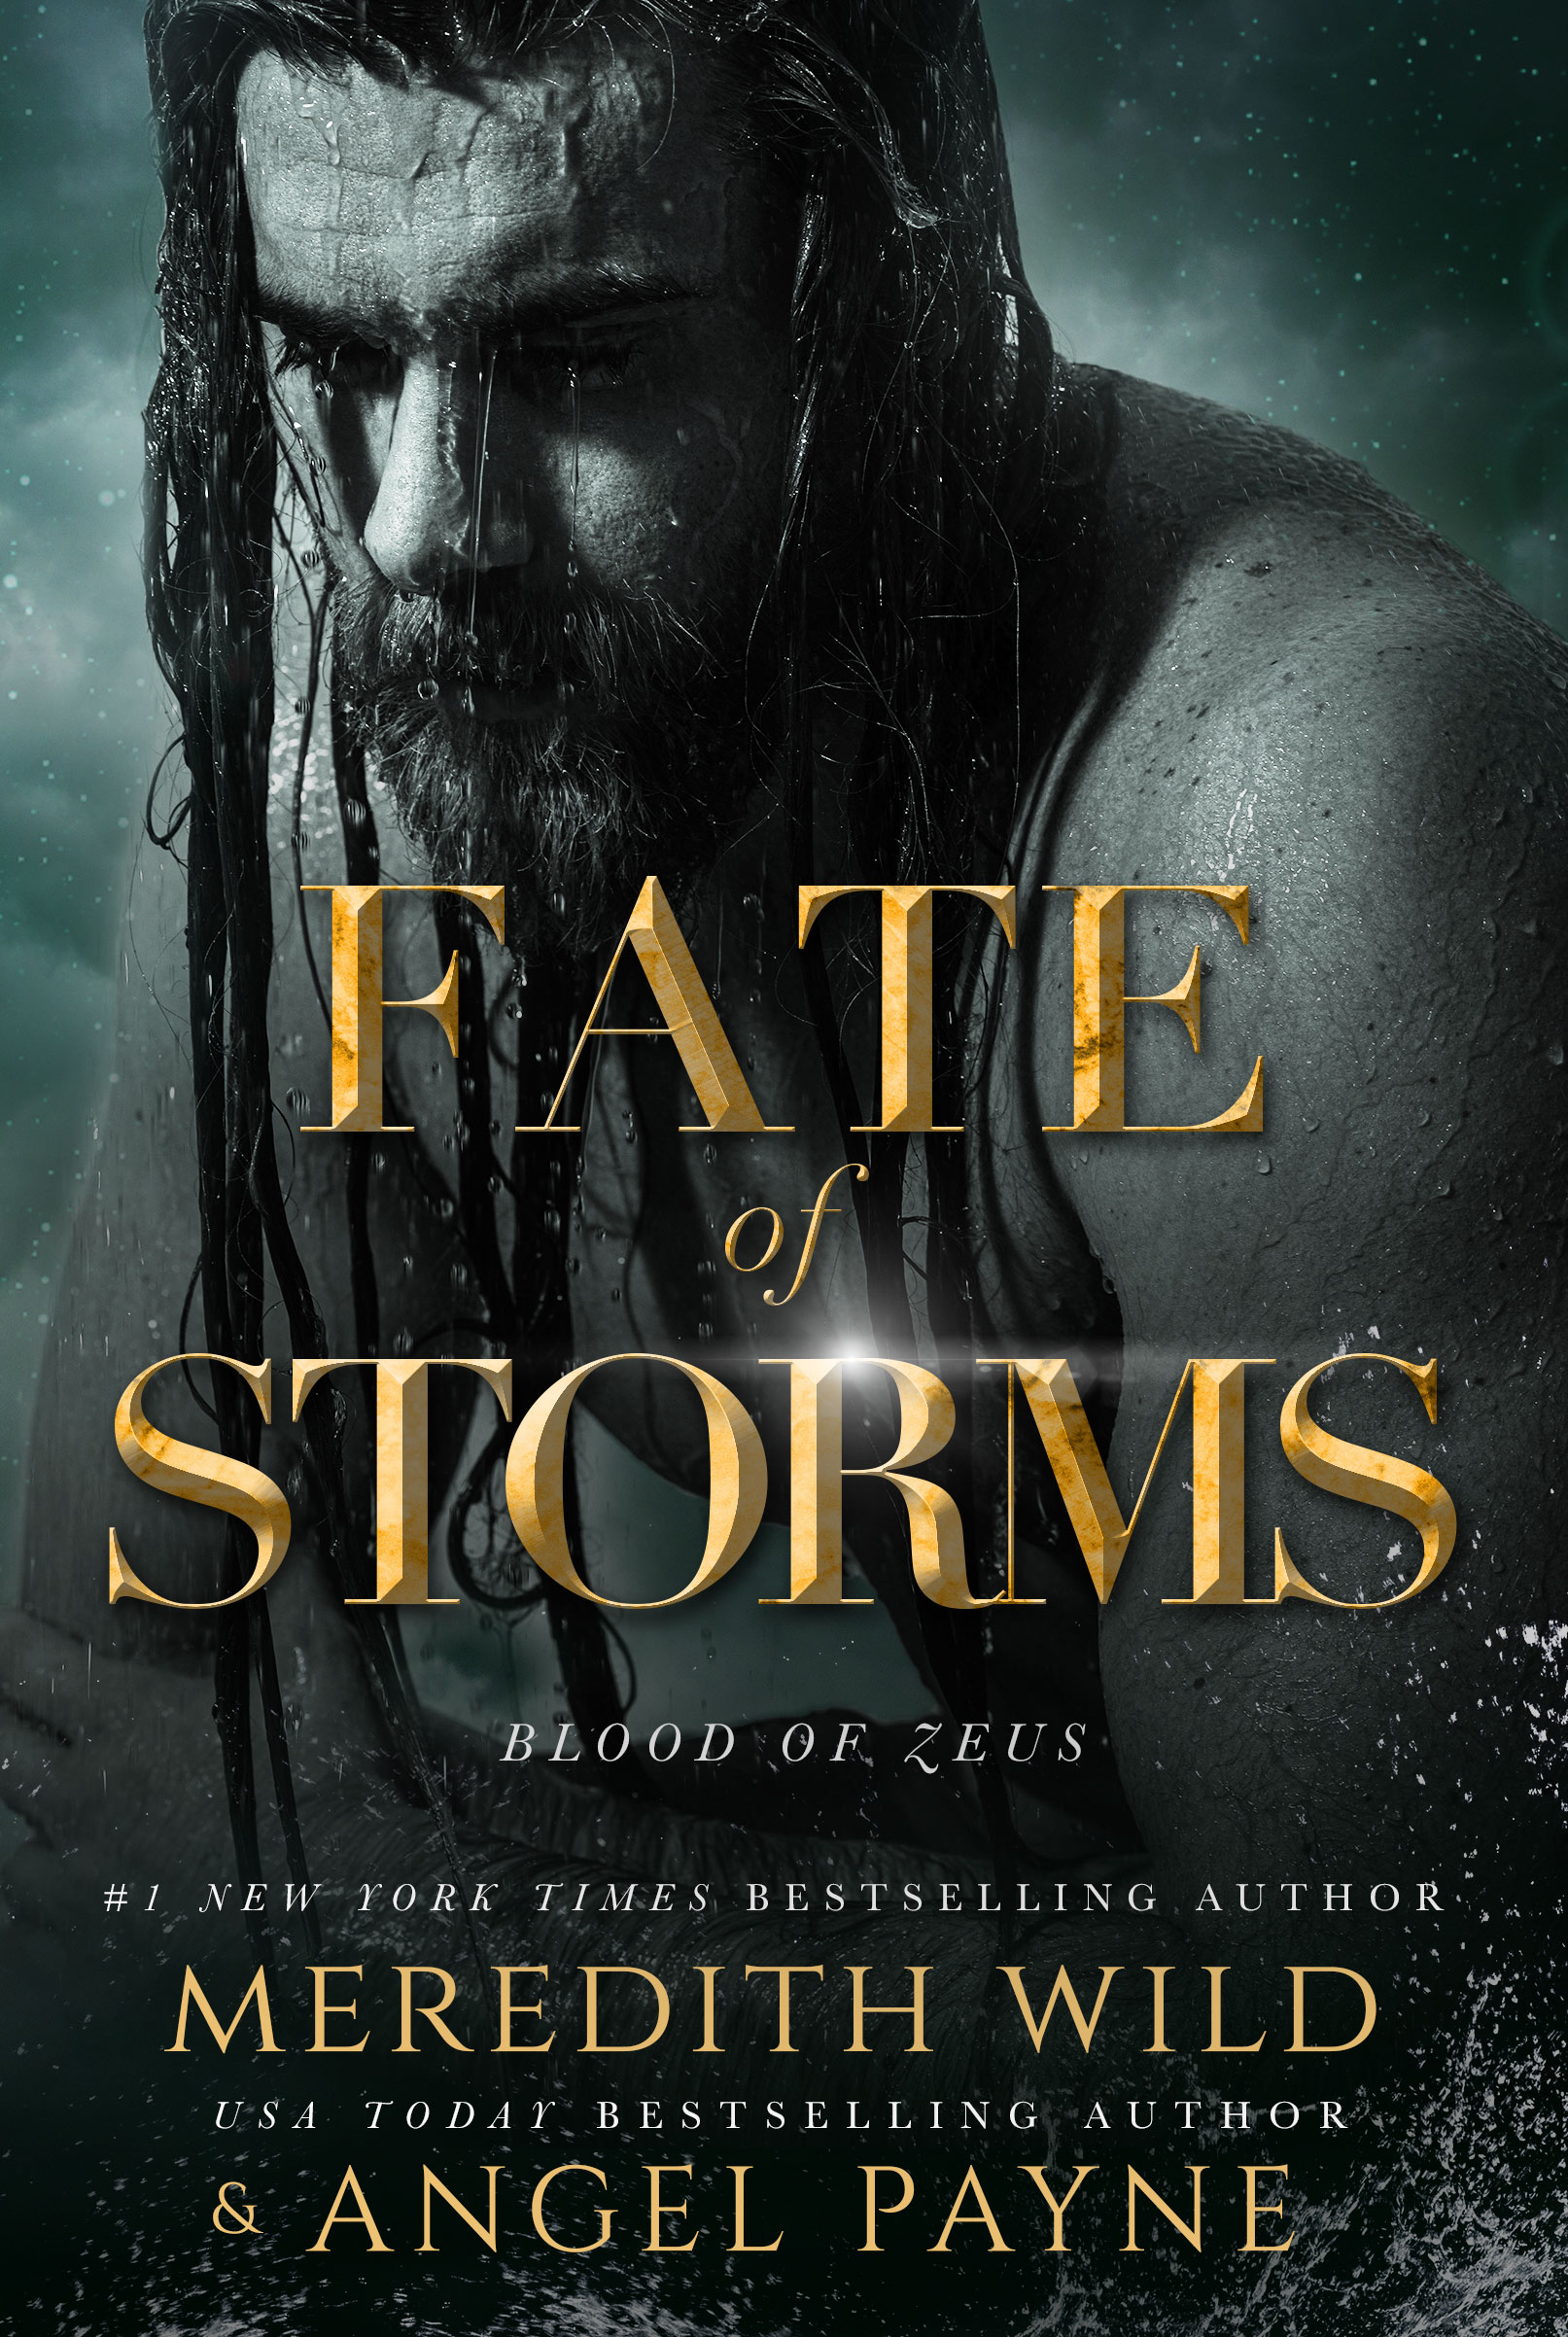 REVIEW ➞ Fate of Storms by Meredith Wild and Angel Payne